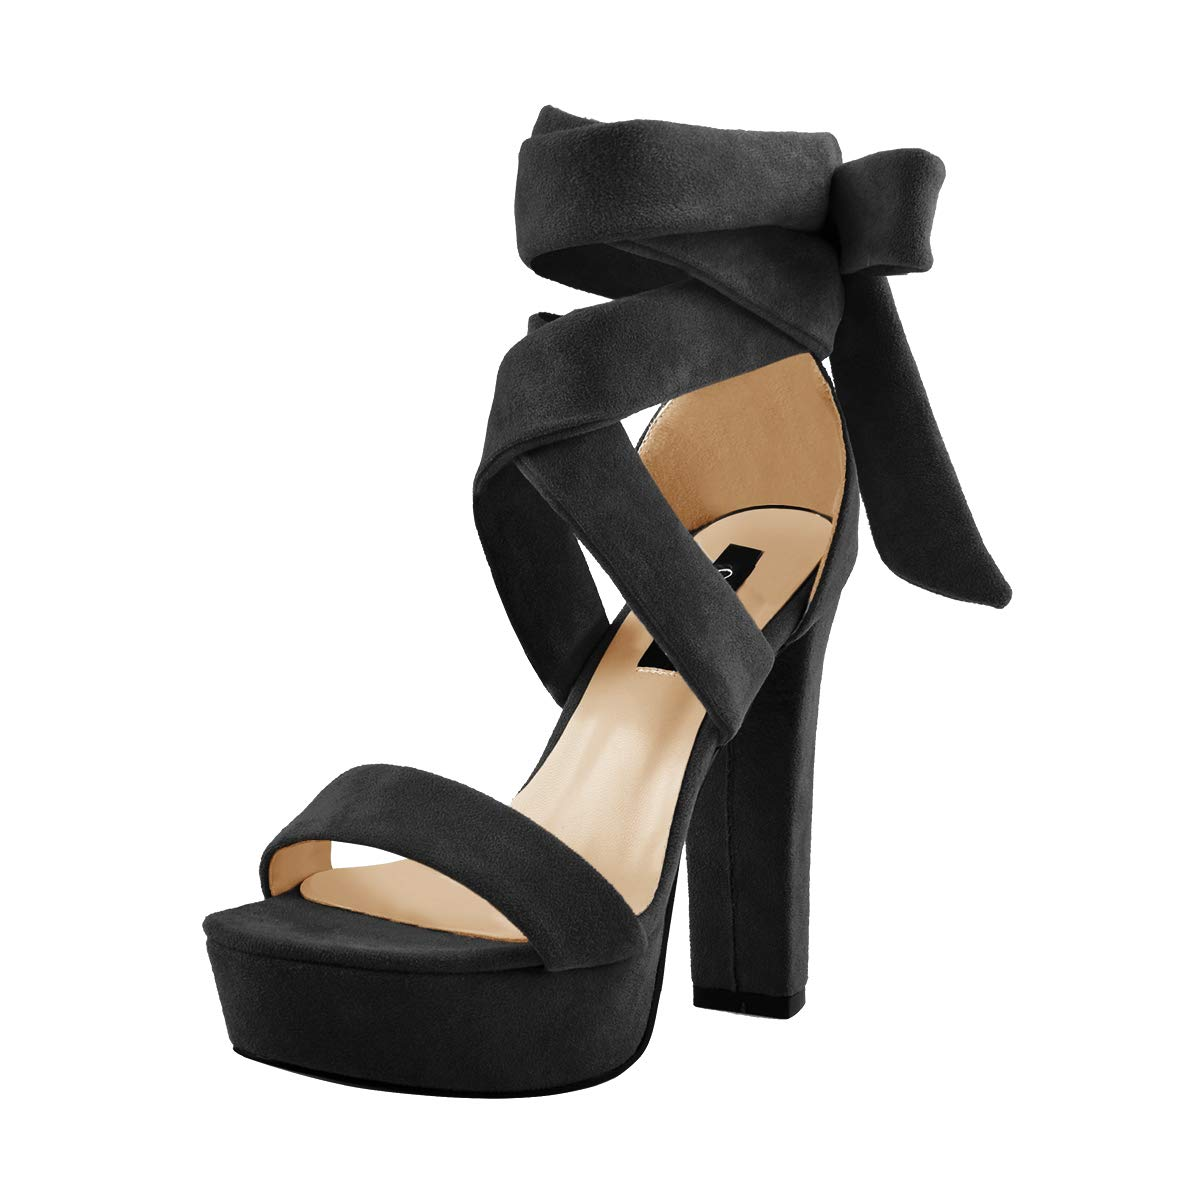 bc9e9474779 Onlymaker Women's Platform Chunky High Heel Lace Up Sandals Open Toe Ankle  Strap Single Band Shoes